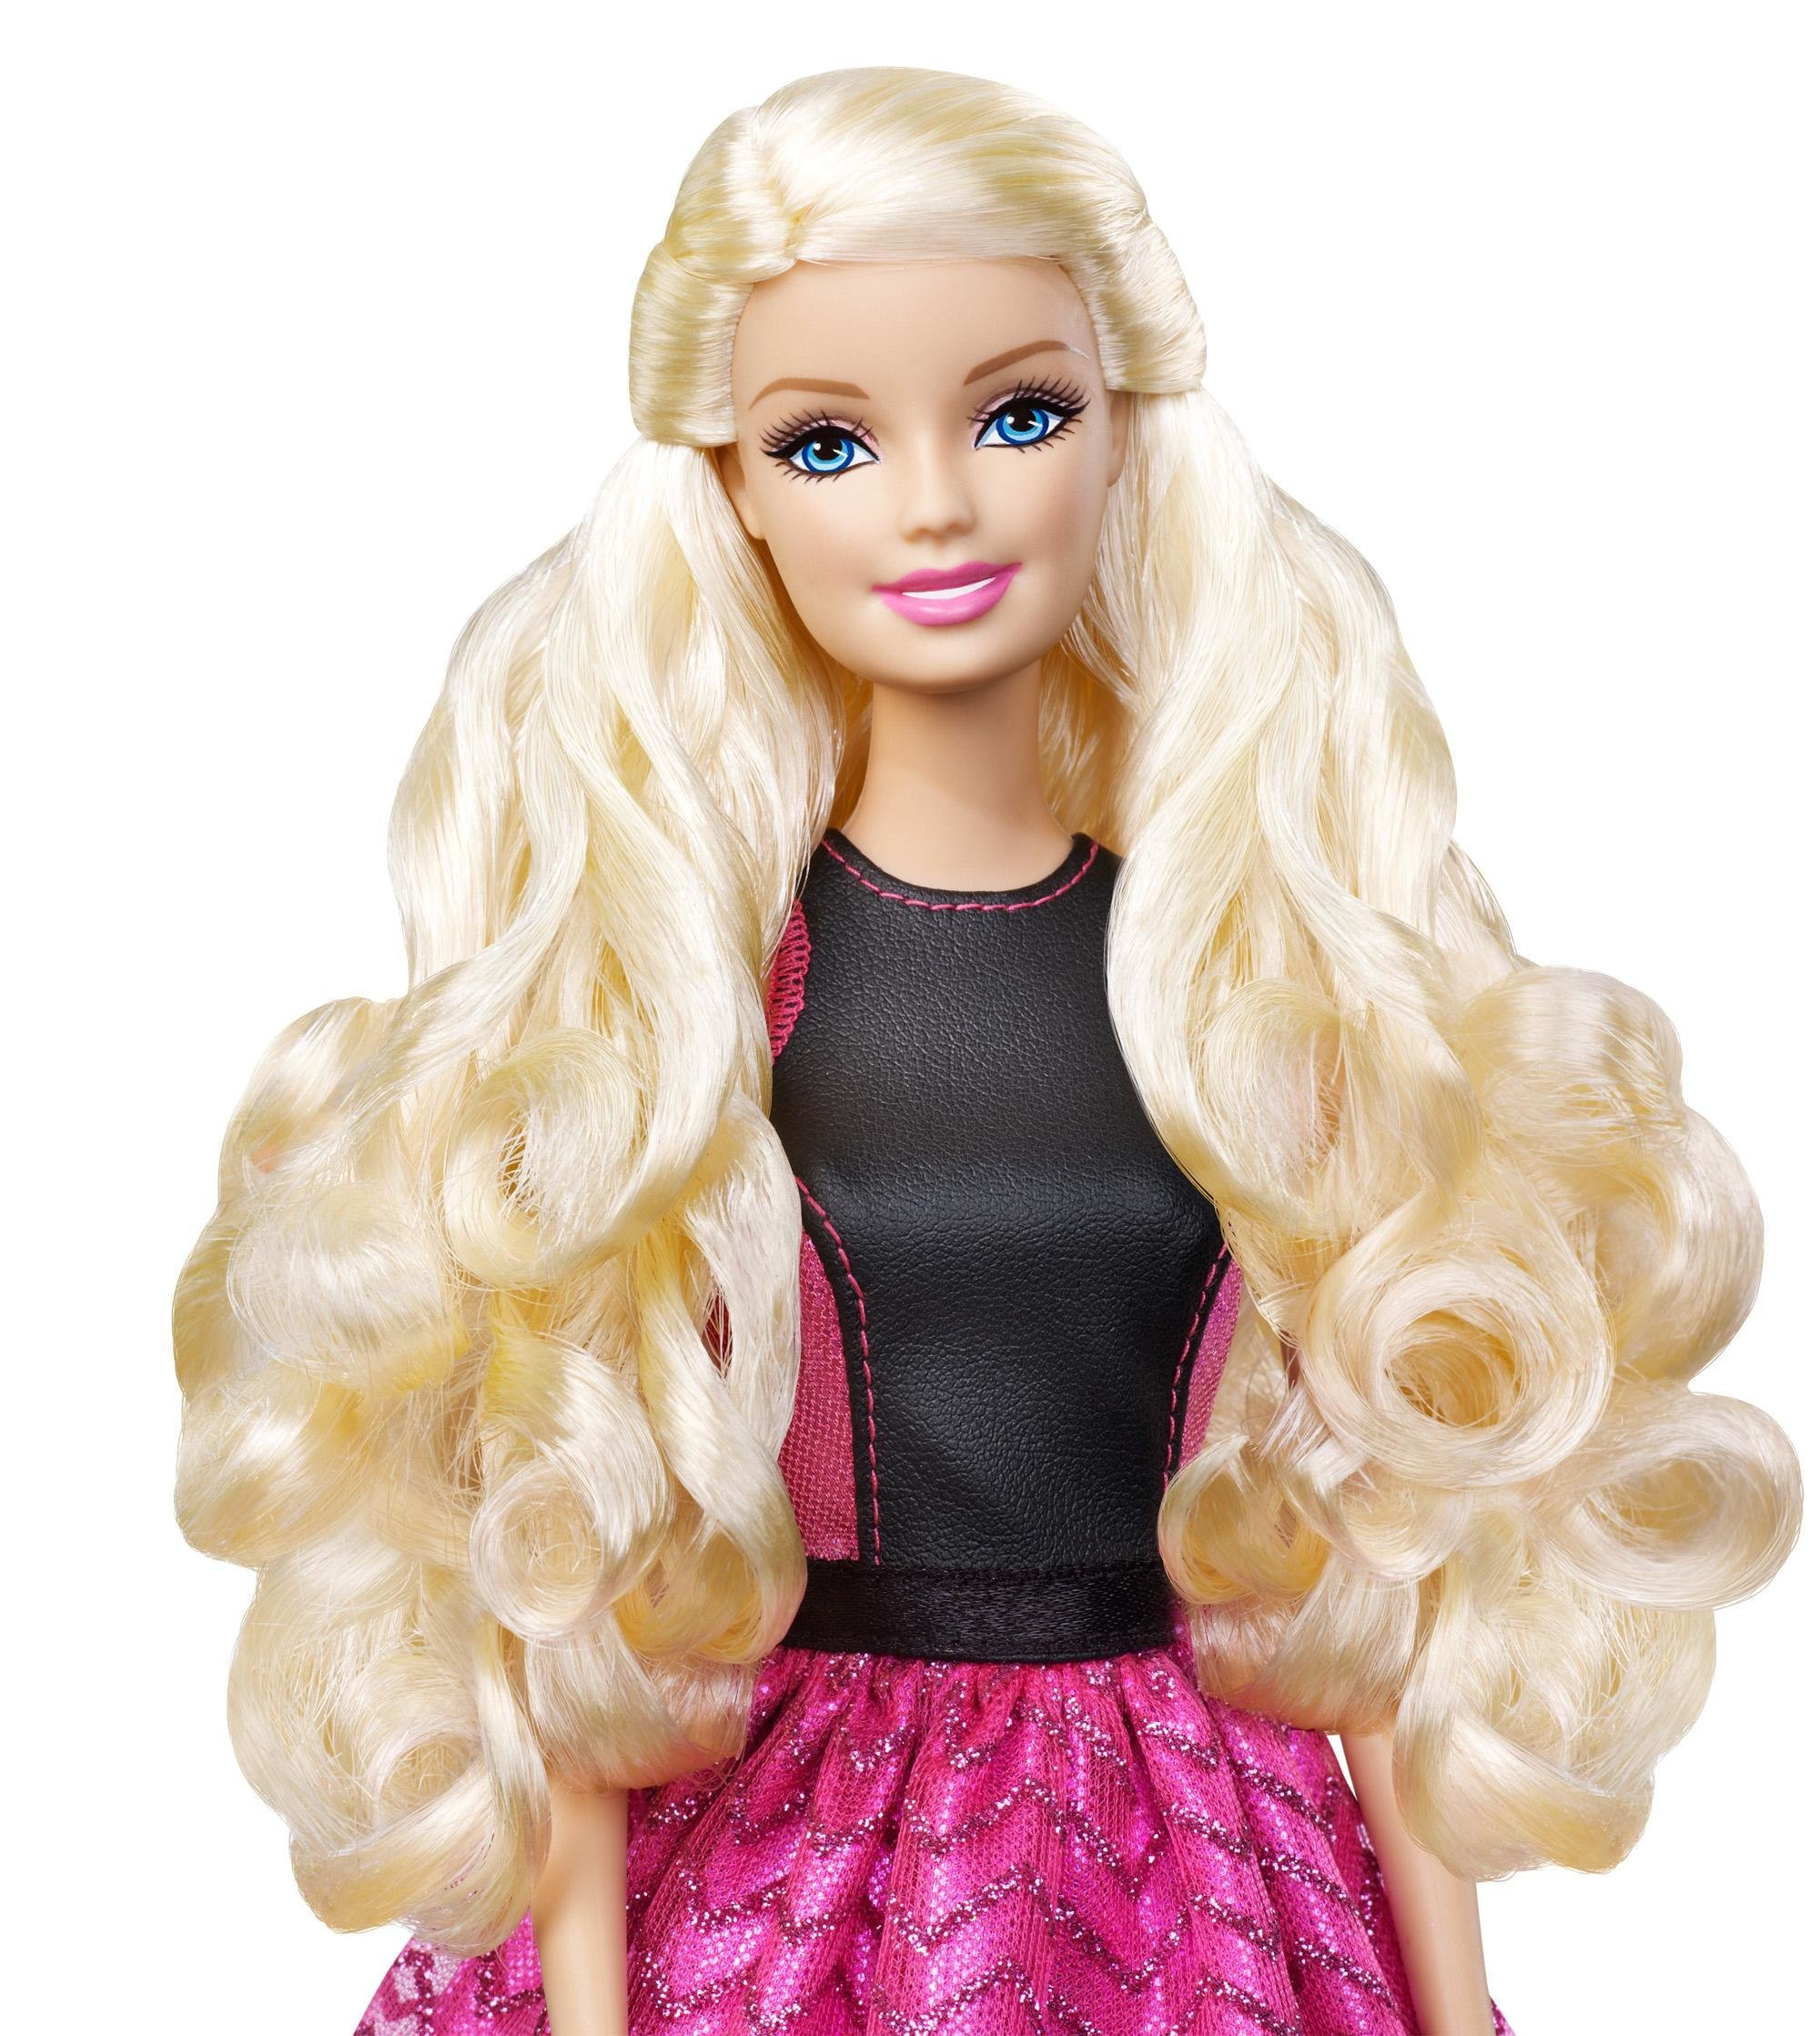 New Barbie Endless Curls Doll Curlers Mattel Blond Hair Ideas With Pictures Original 1024 x 768